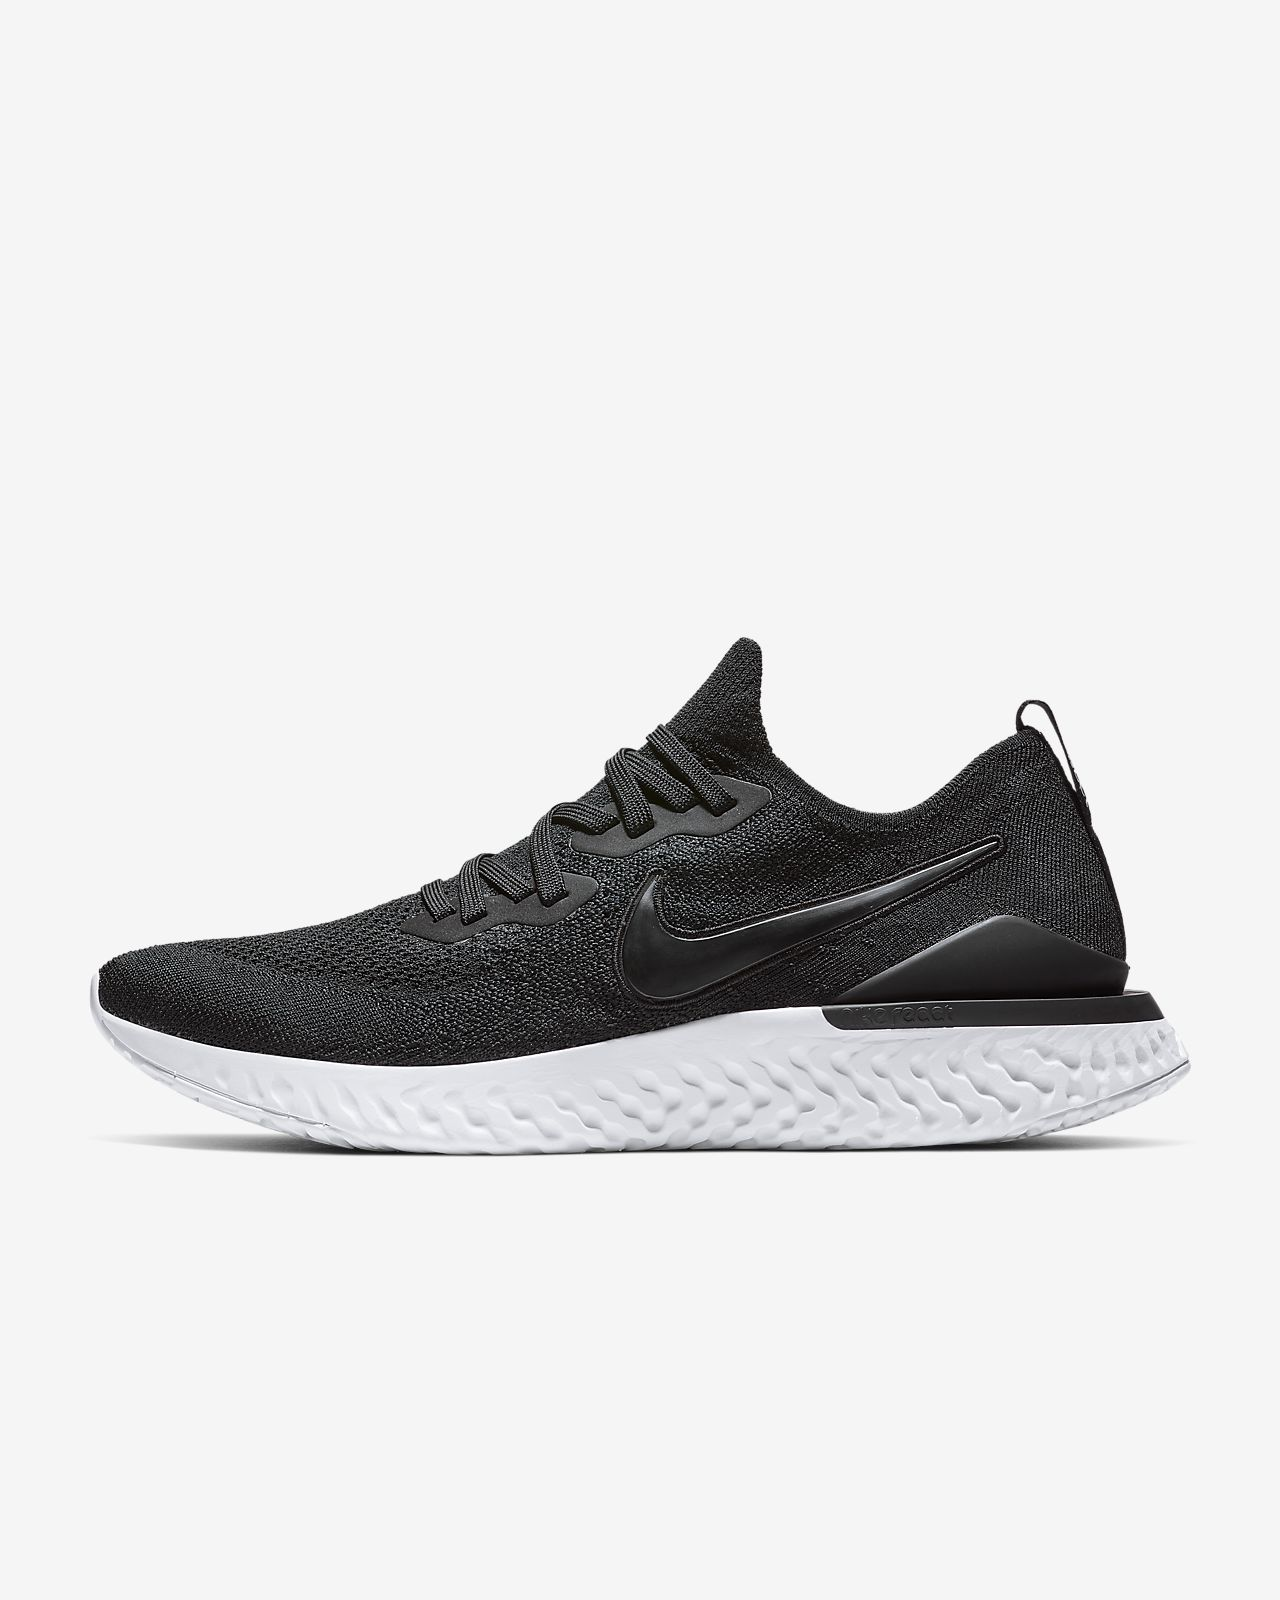 Details about NIKE EPIC REACT FLYKNIT 2 New Men's Black Sapphire Running Shoes MSRP $150